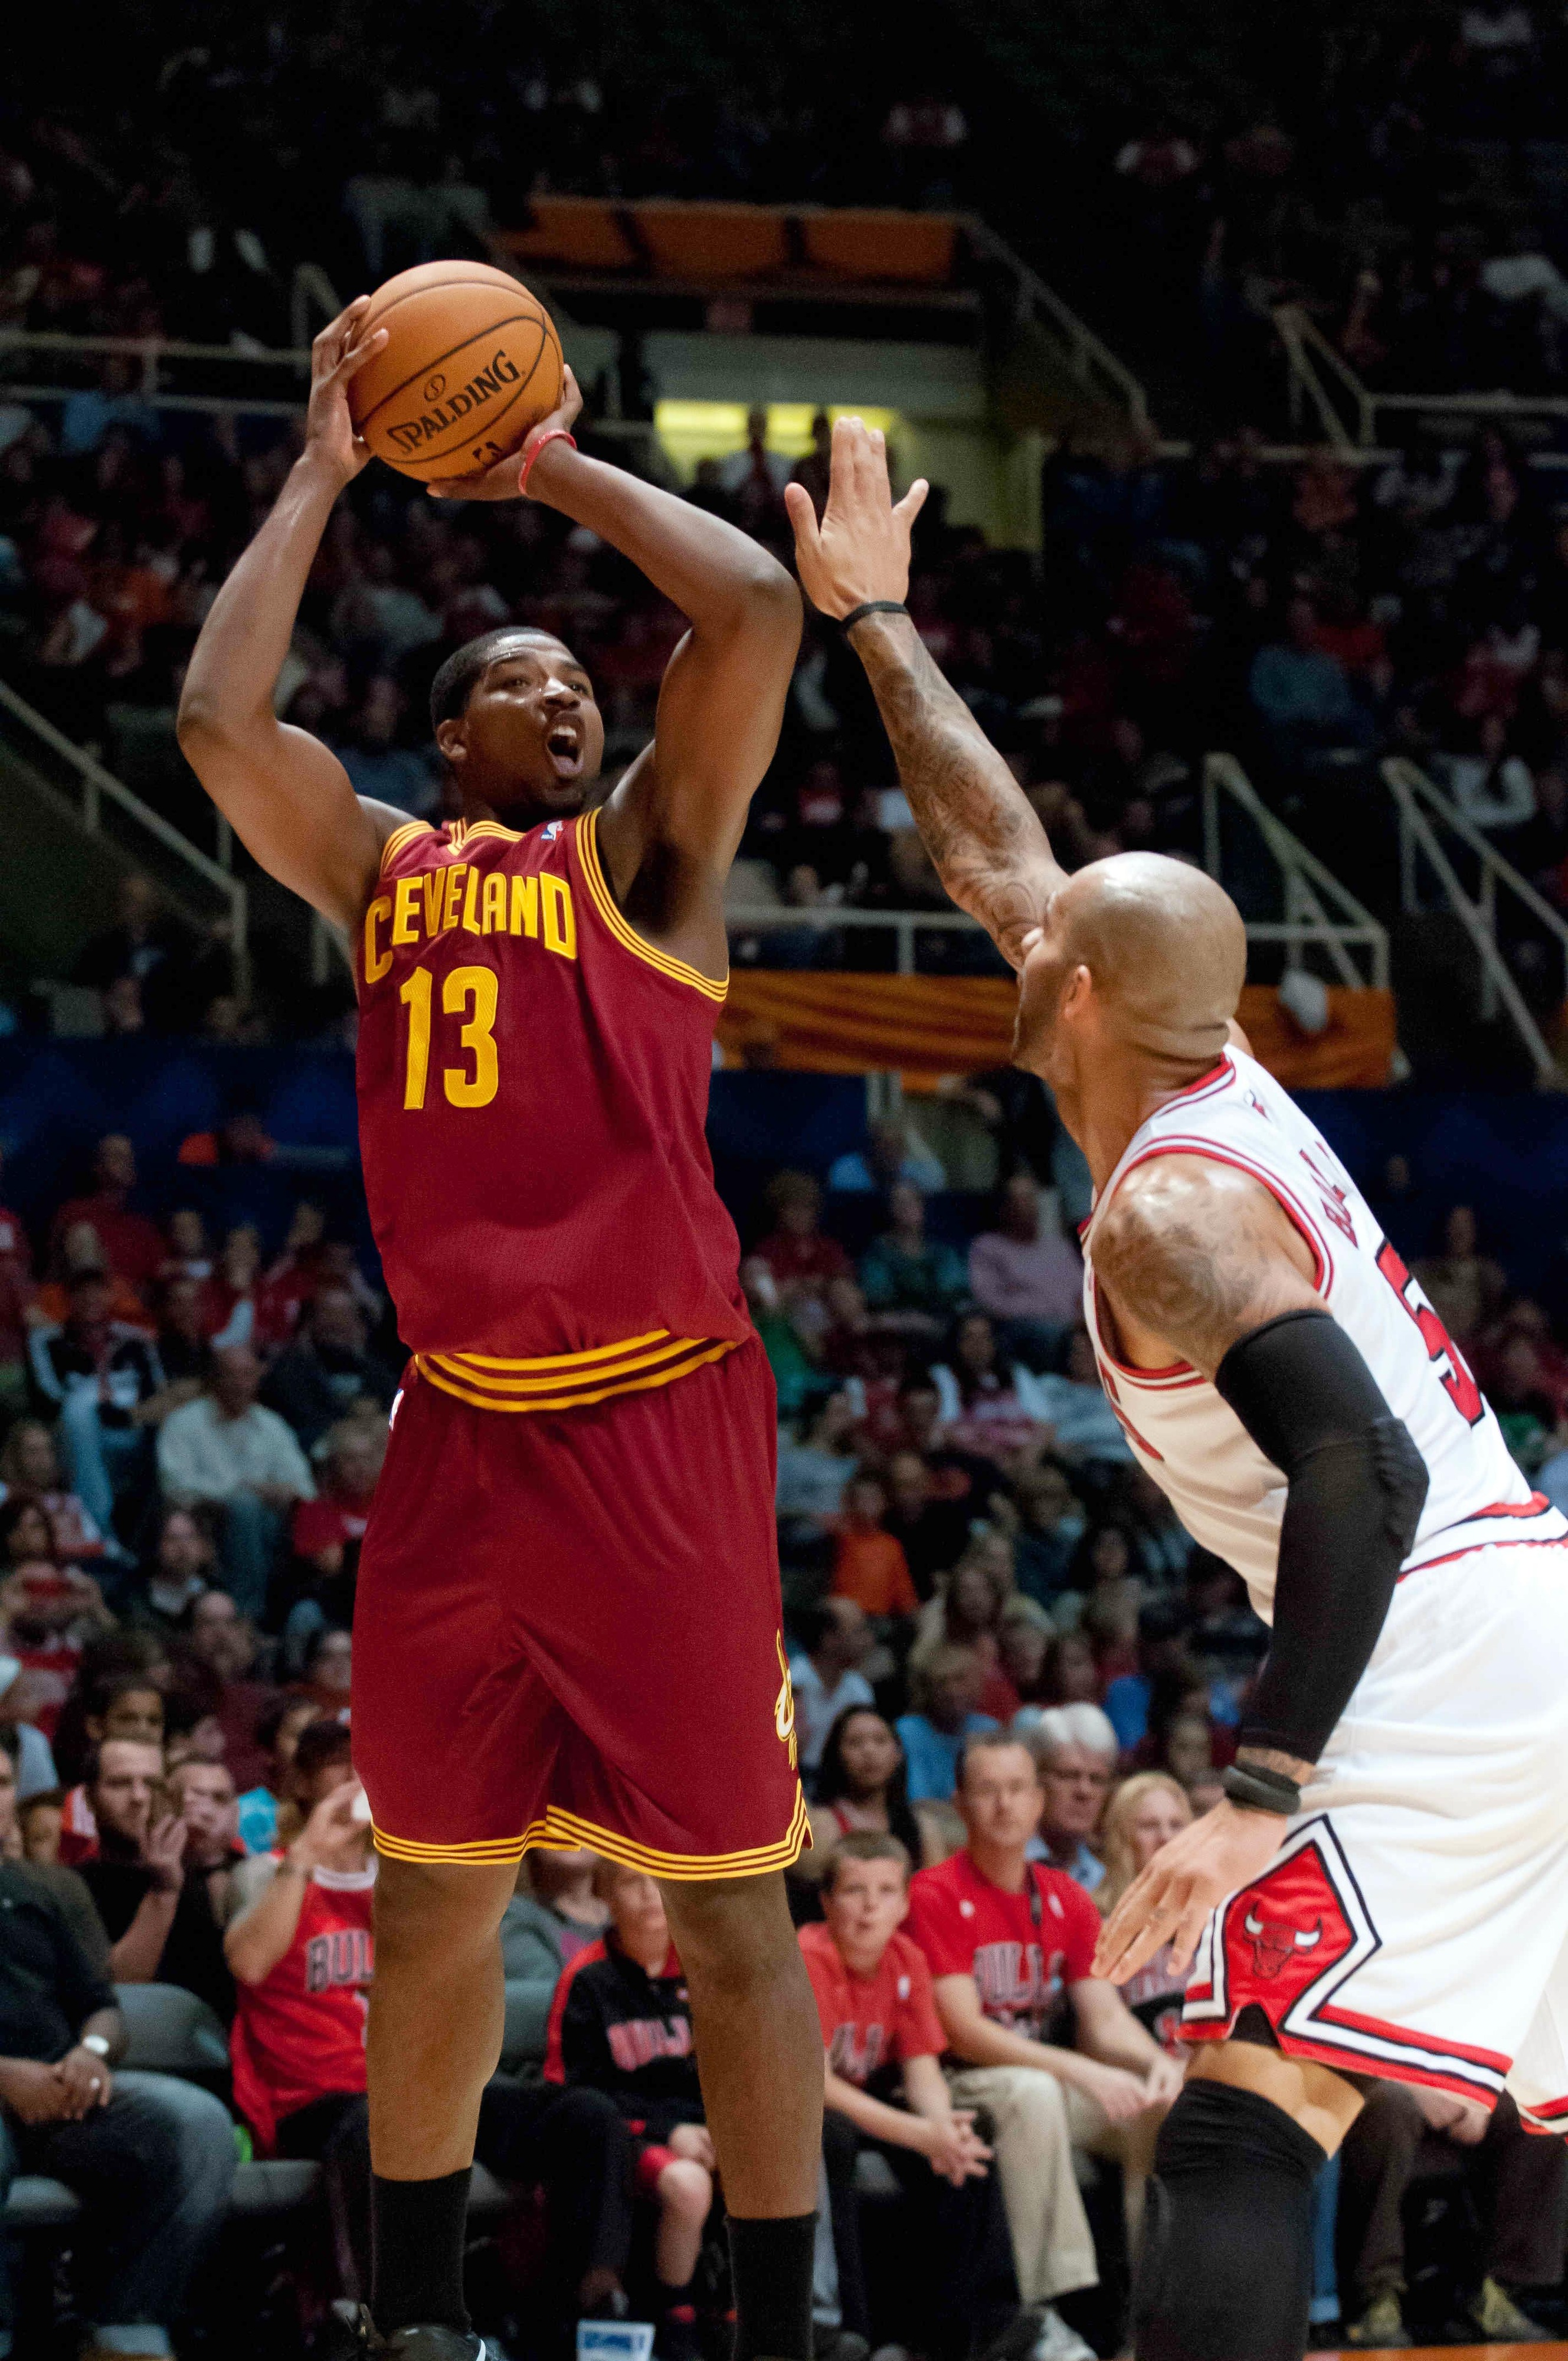 Tristan Thompson is looking to make his shot tighty using his righty from now on ...